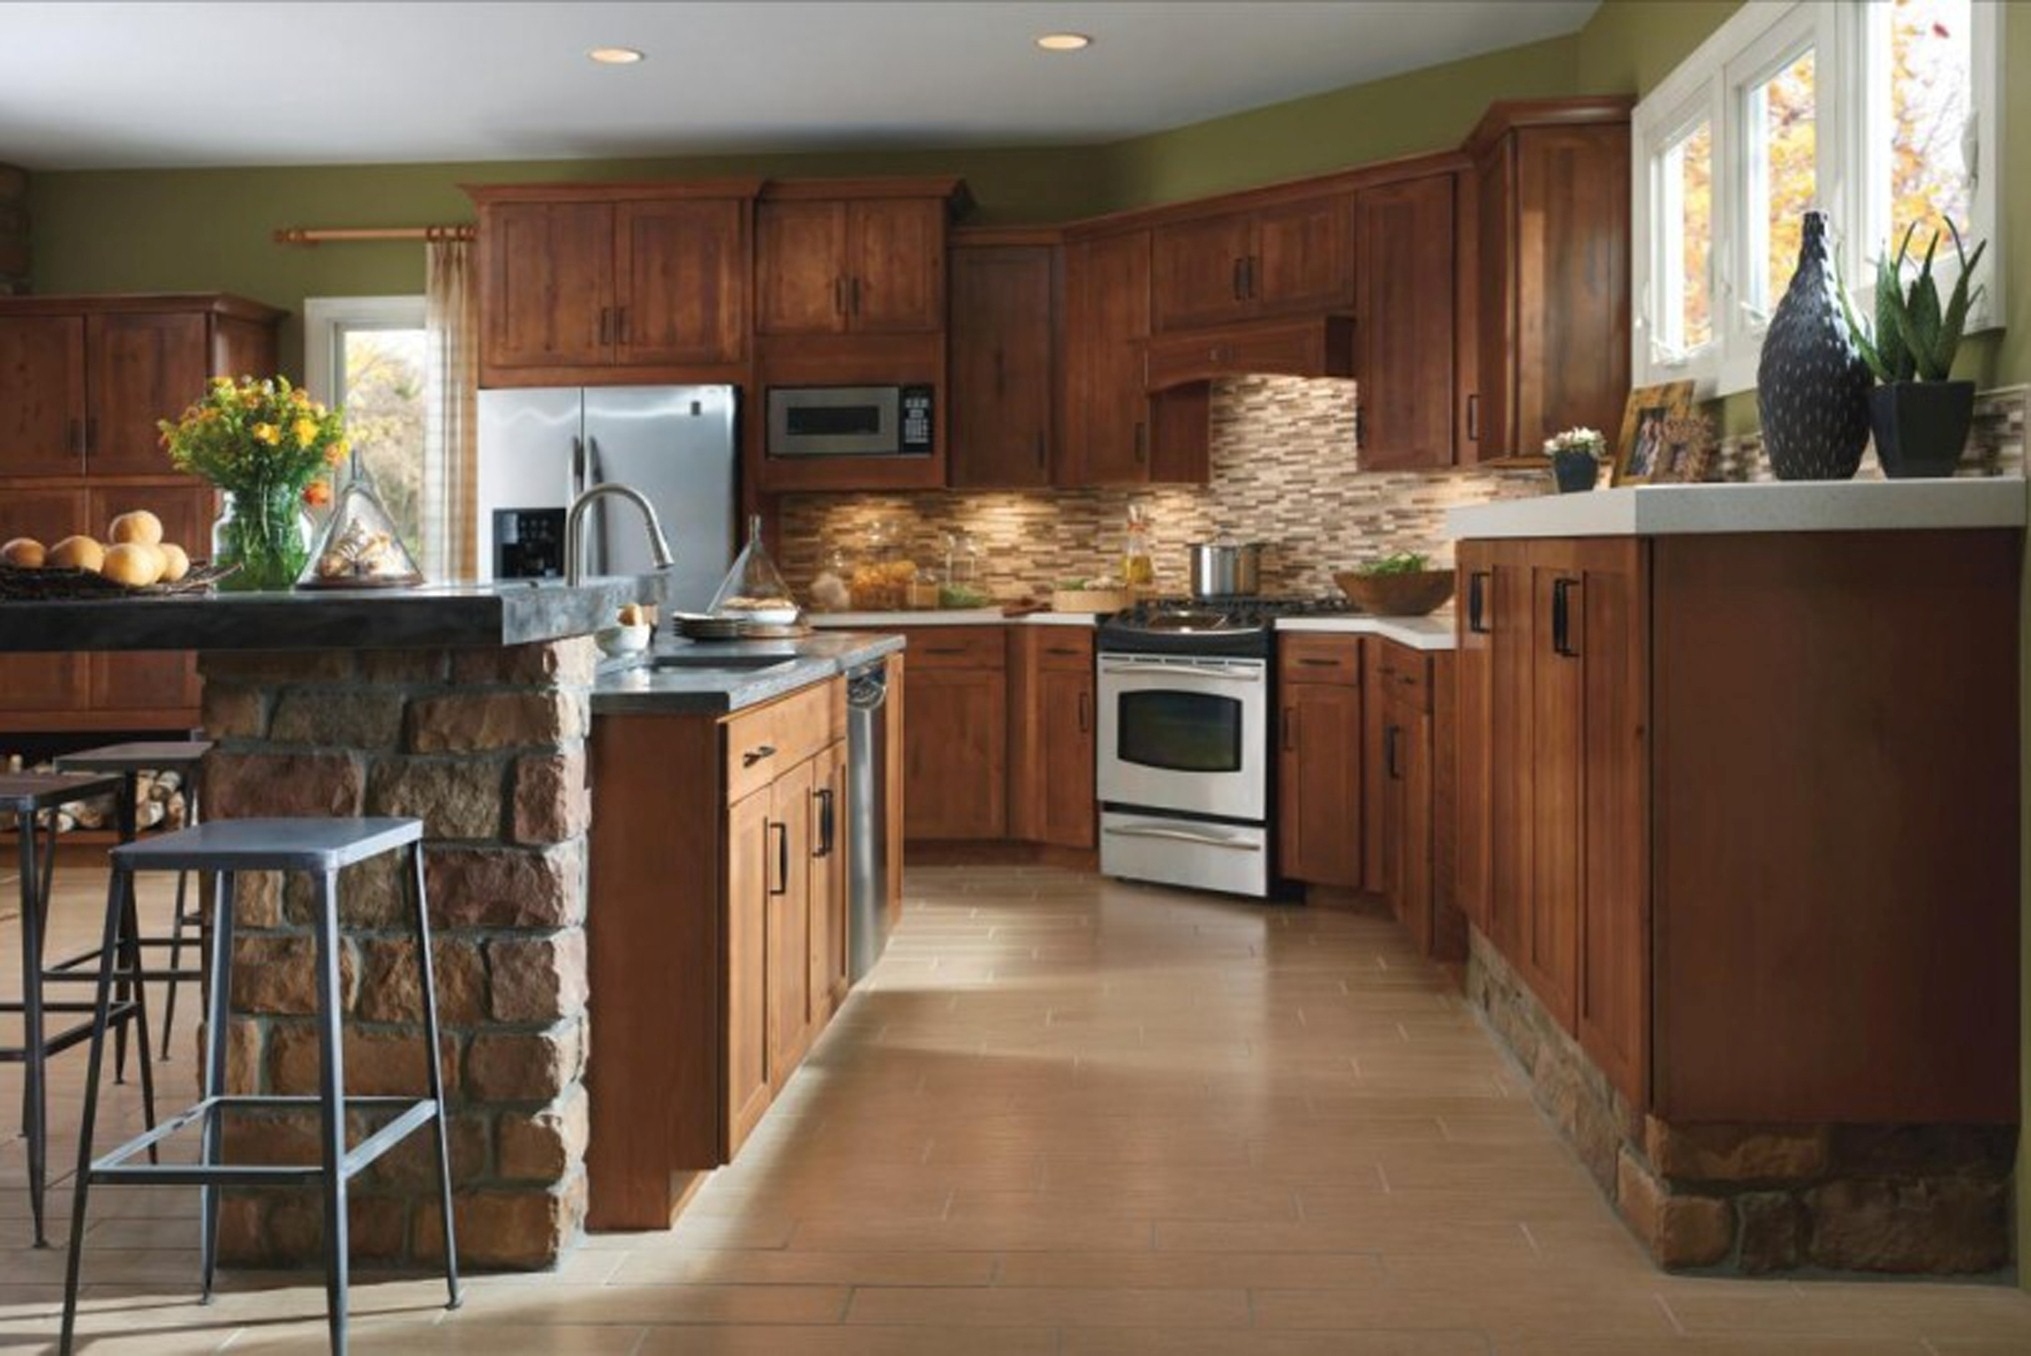 Luxurious Ideas Of Kitchen Cabinet App Along With Islands And L Shaped Also With Bar Foots Incredible Look Of Kitchen Cabinet (Image 14 of 123)